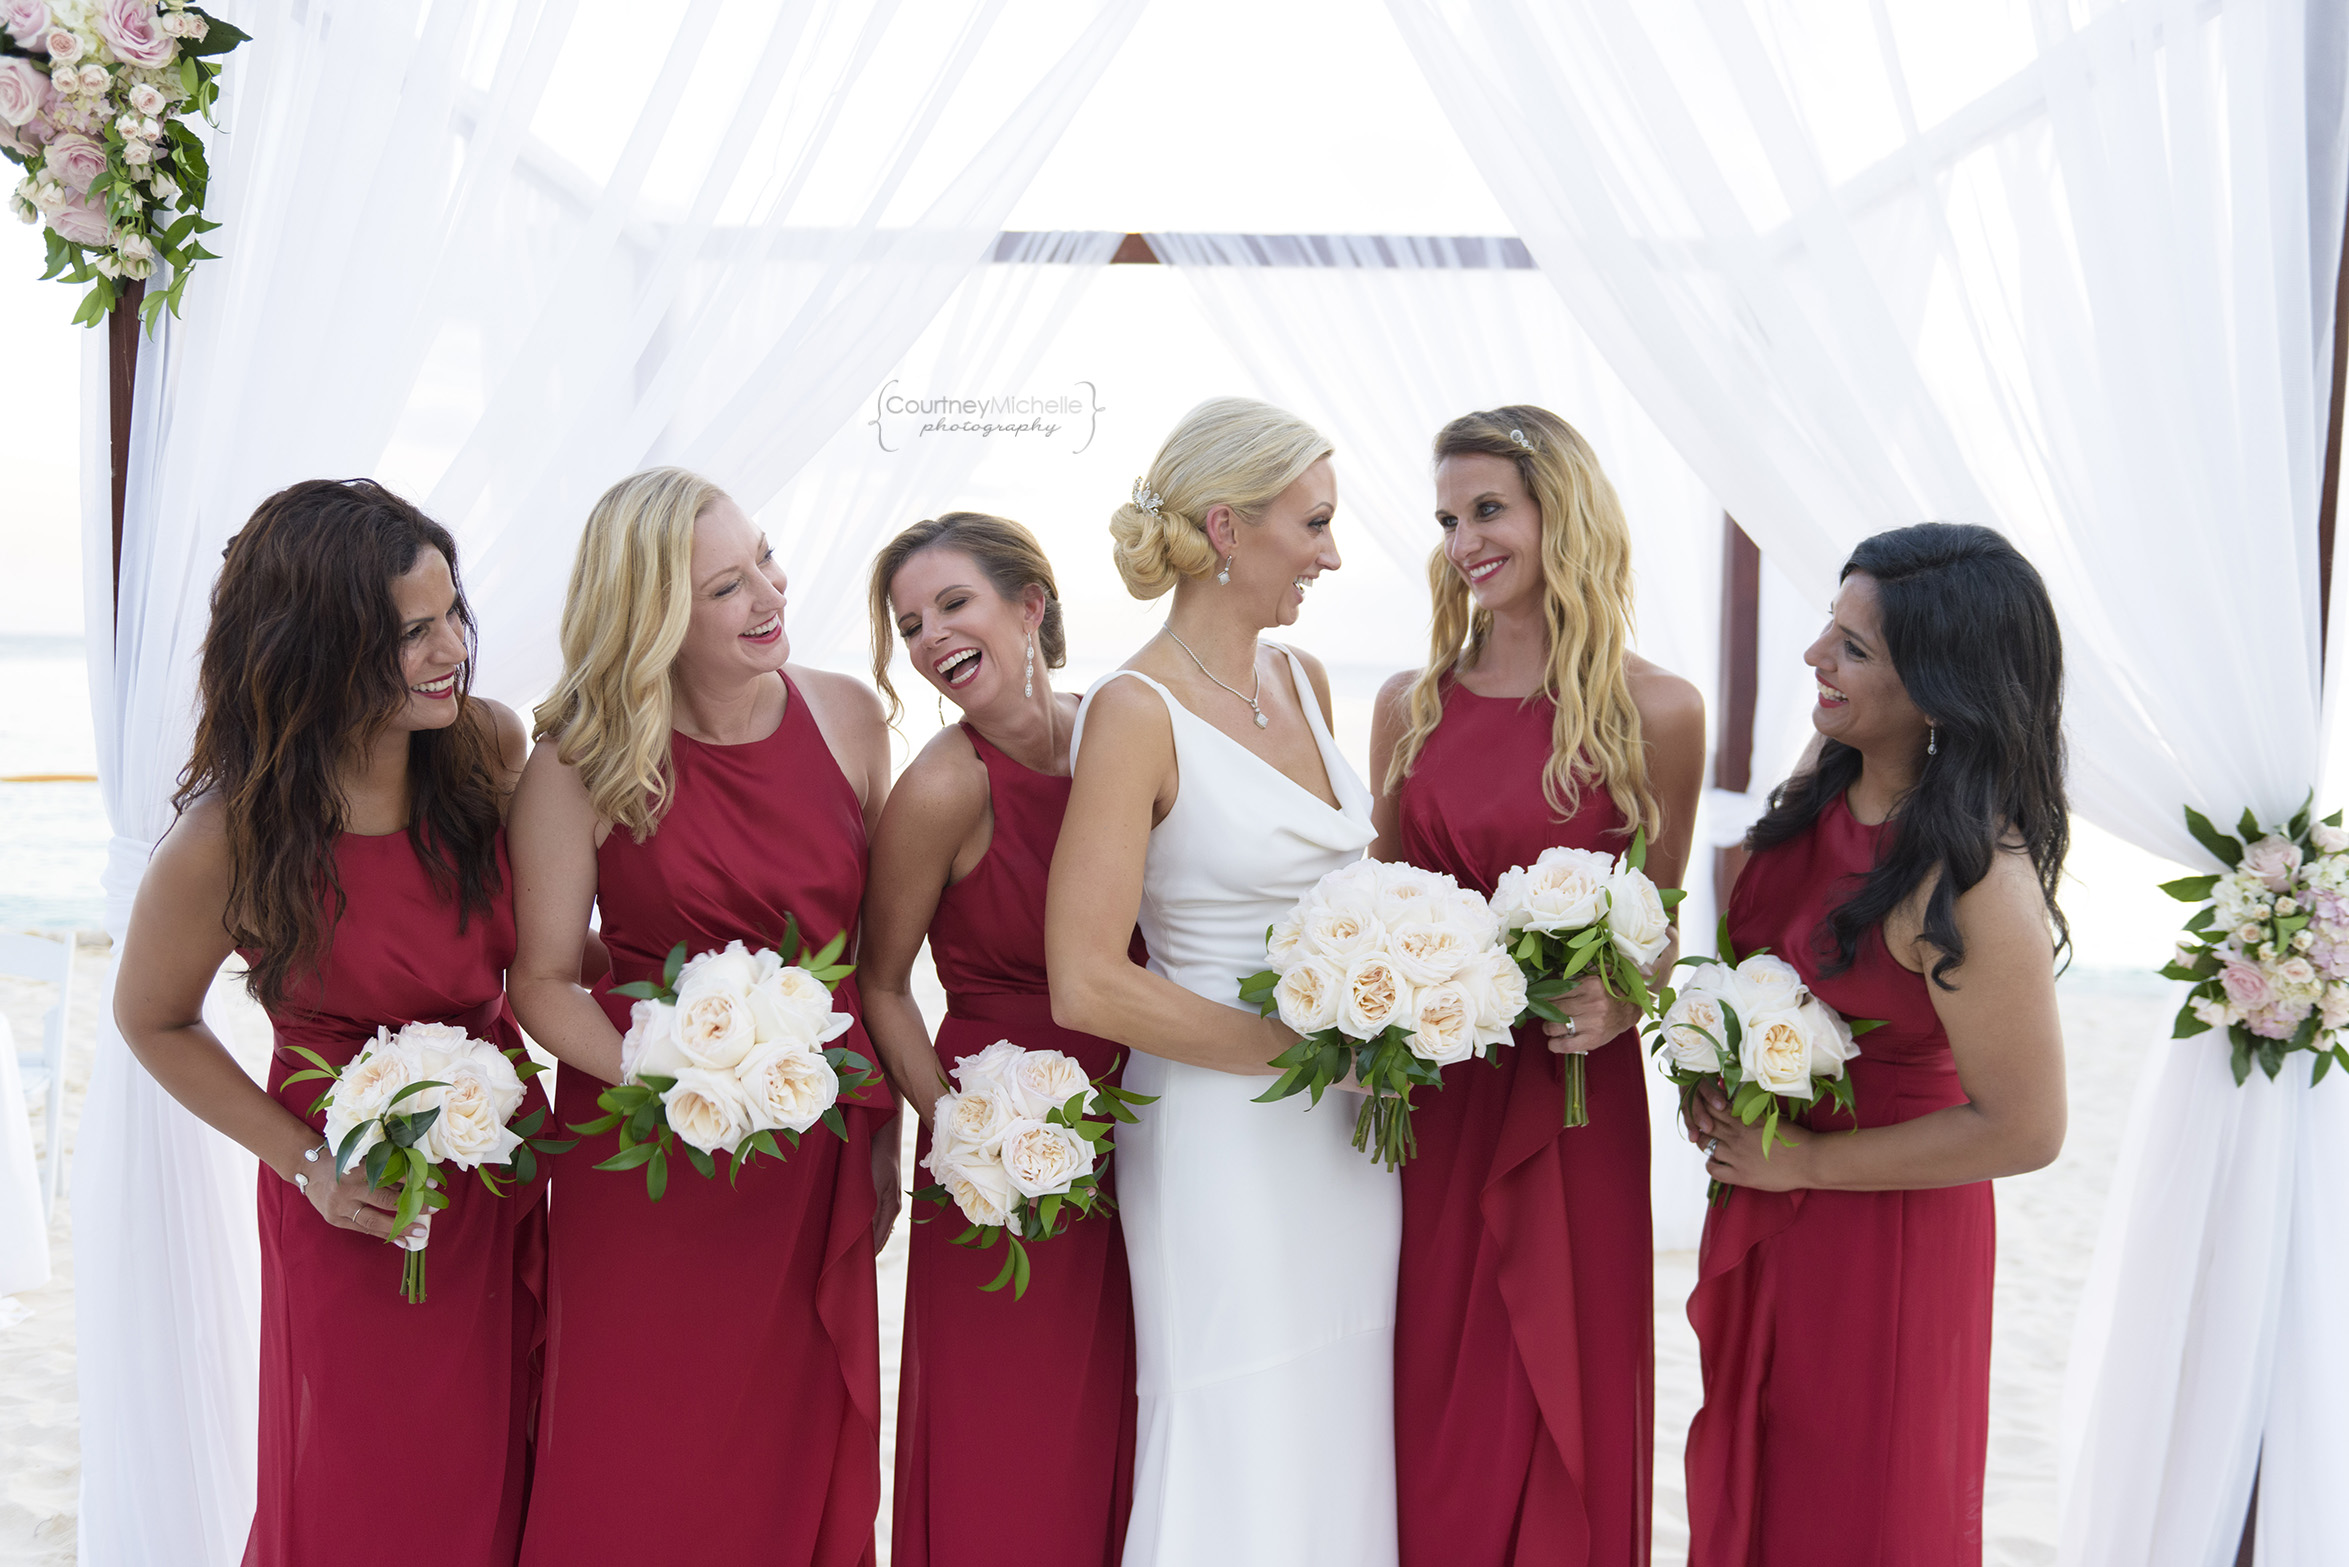 bride-and-bridesmaids-grand-cayman-beach-wedding-photography-by-courtney-laper©CopyrightCMP-LeaAnneRaj-7924.jpg